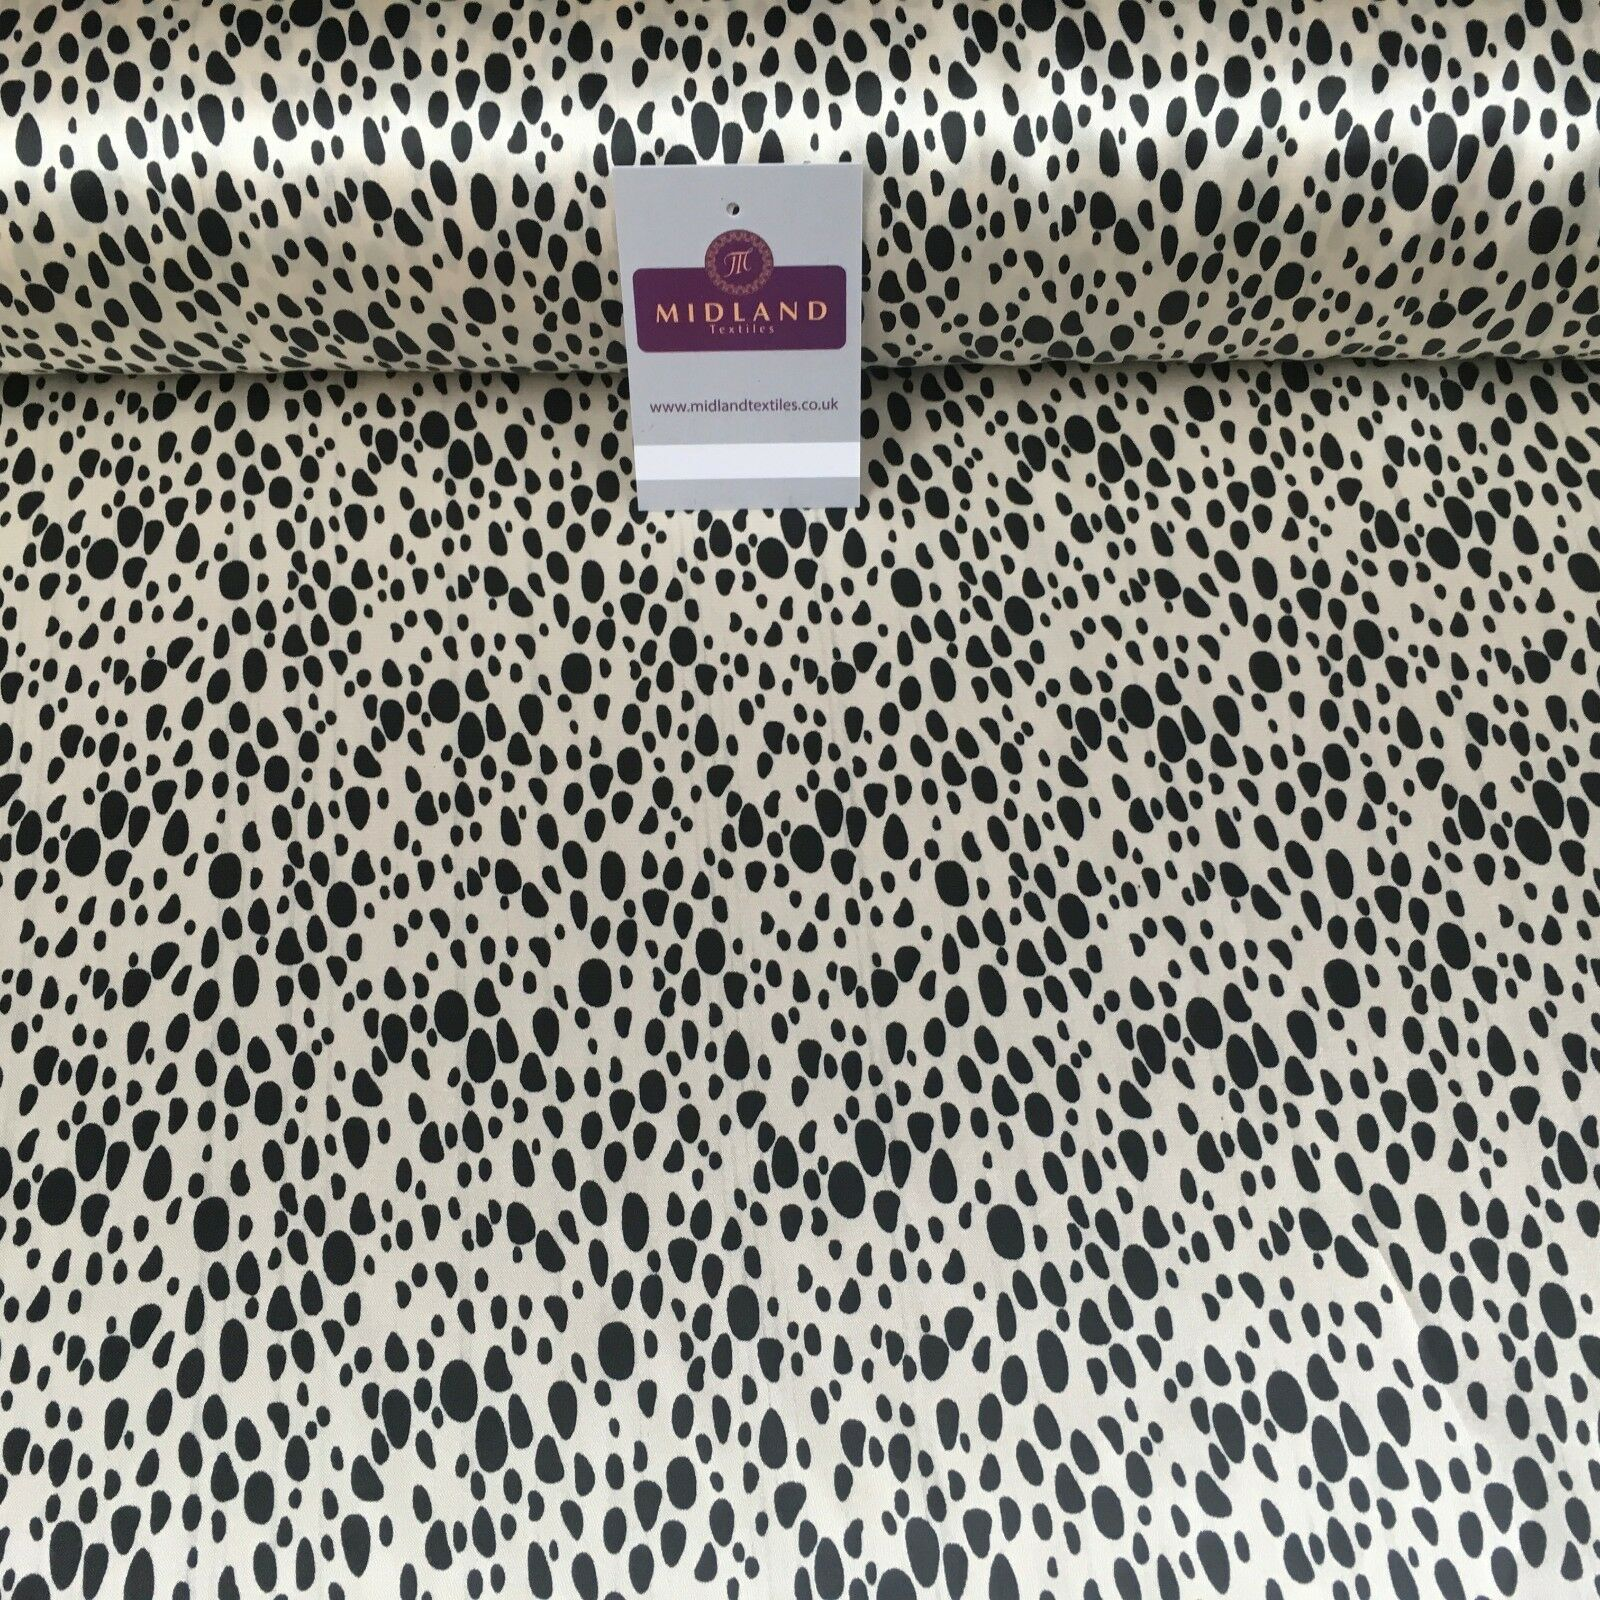 "Cream and Black Animal Printed silky smooth Dress Fabric 58"" Wide M145-20 Mtex"